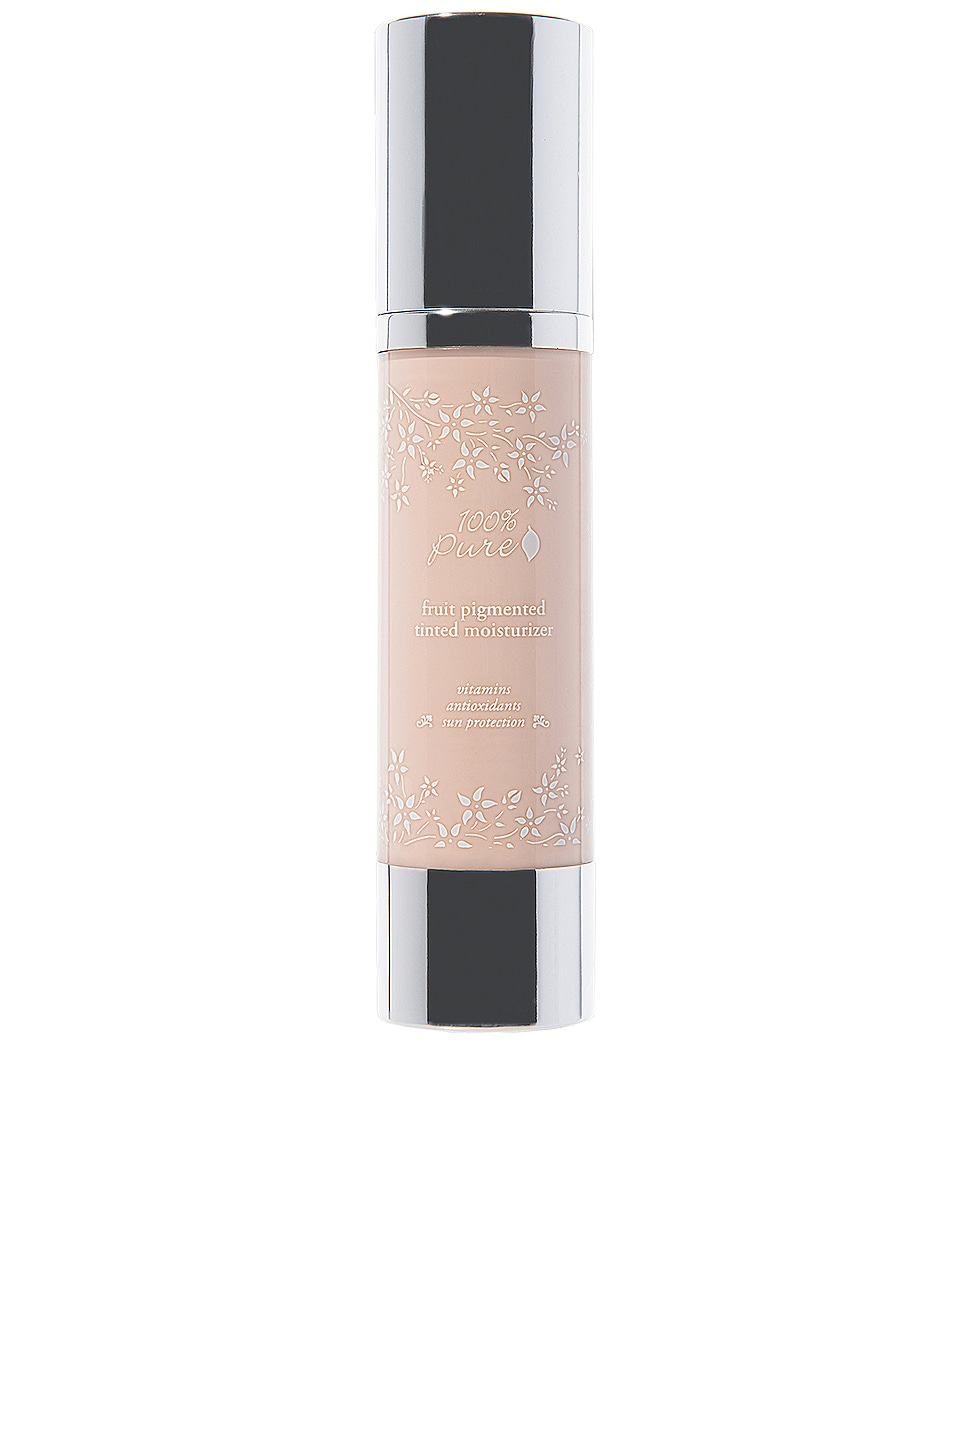 100% Pure Tinted Moisturizer with Sun Protection in Alpine Rose